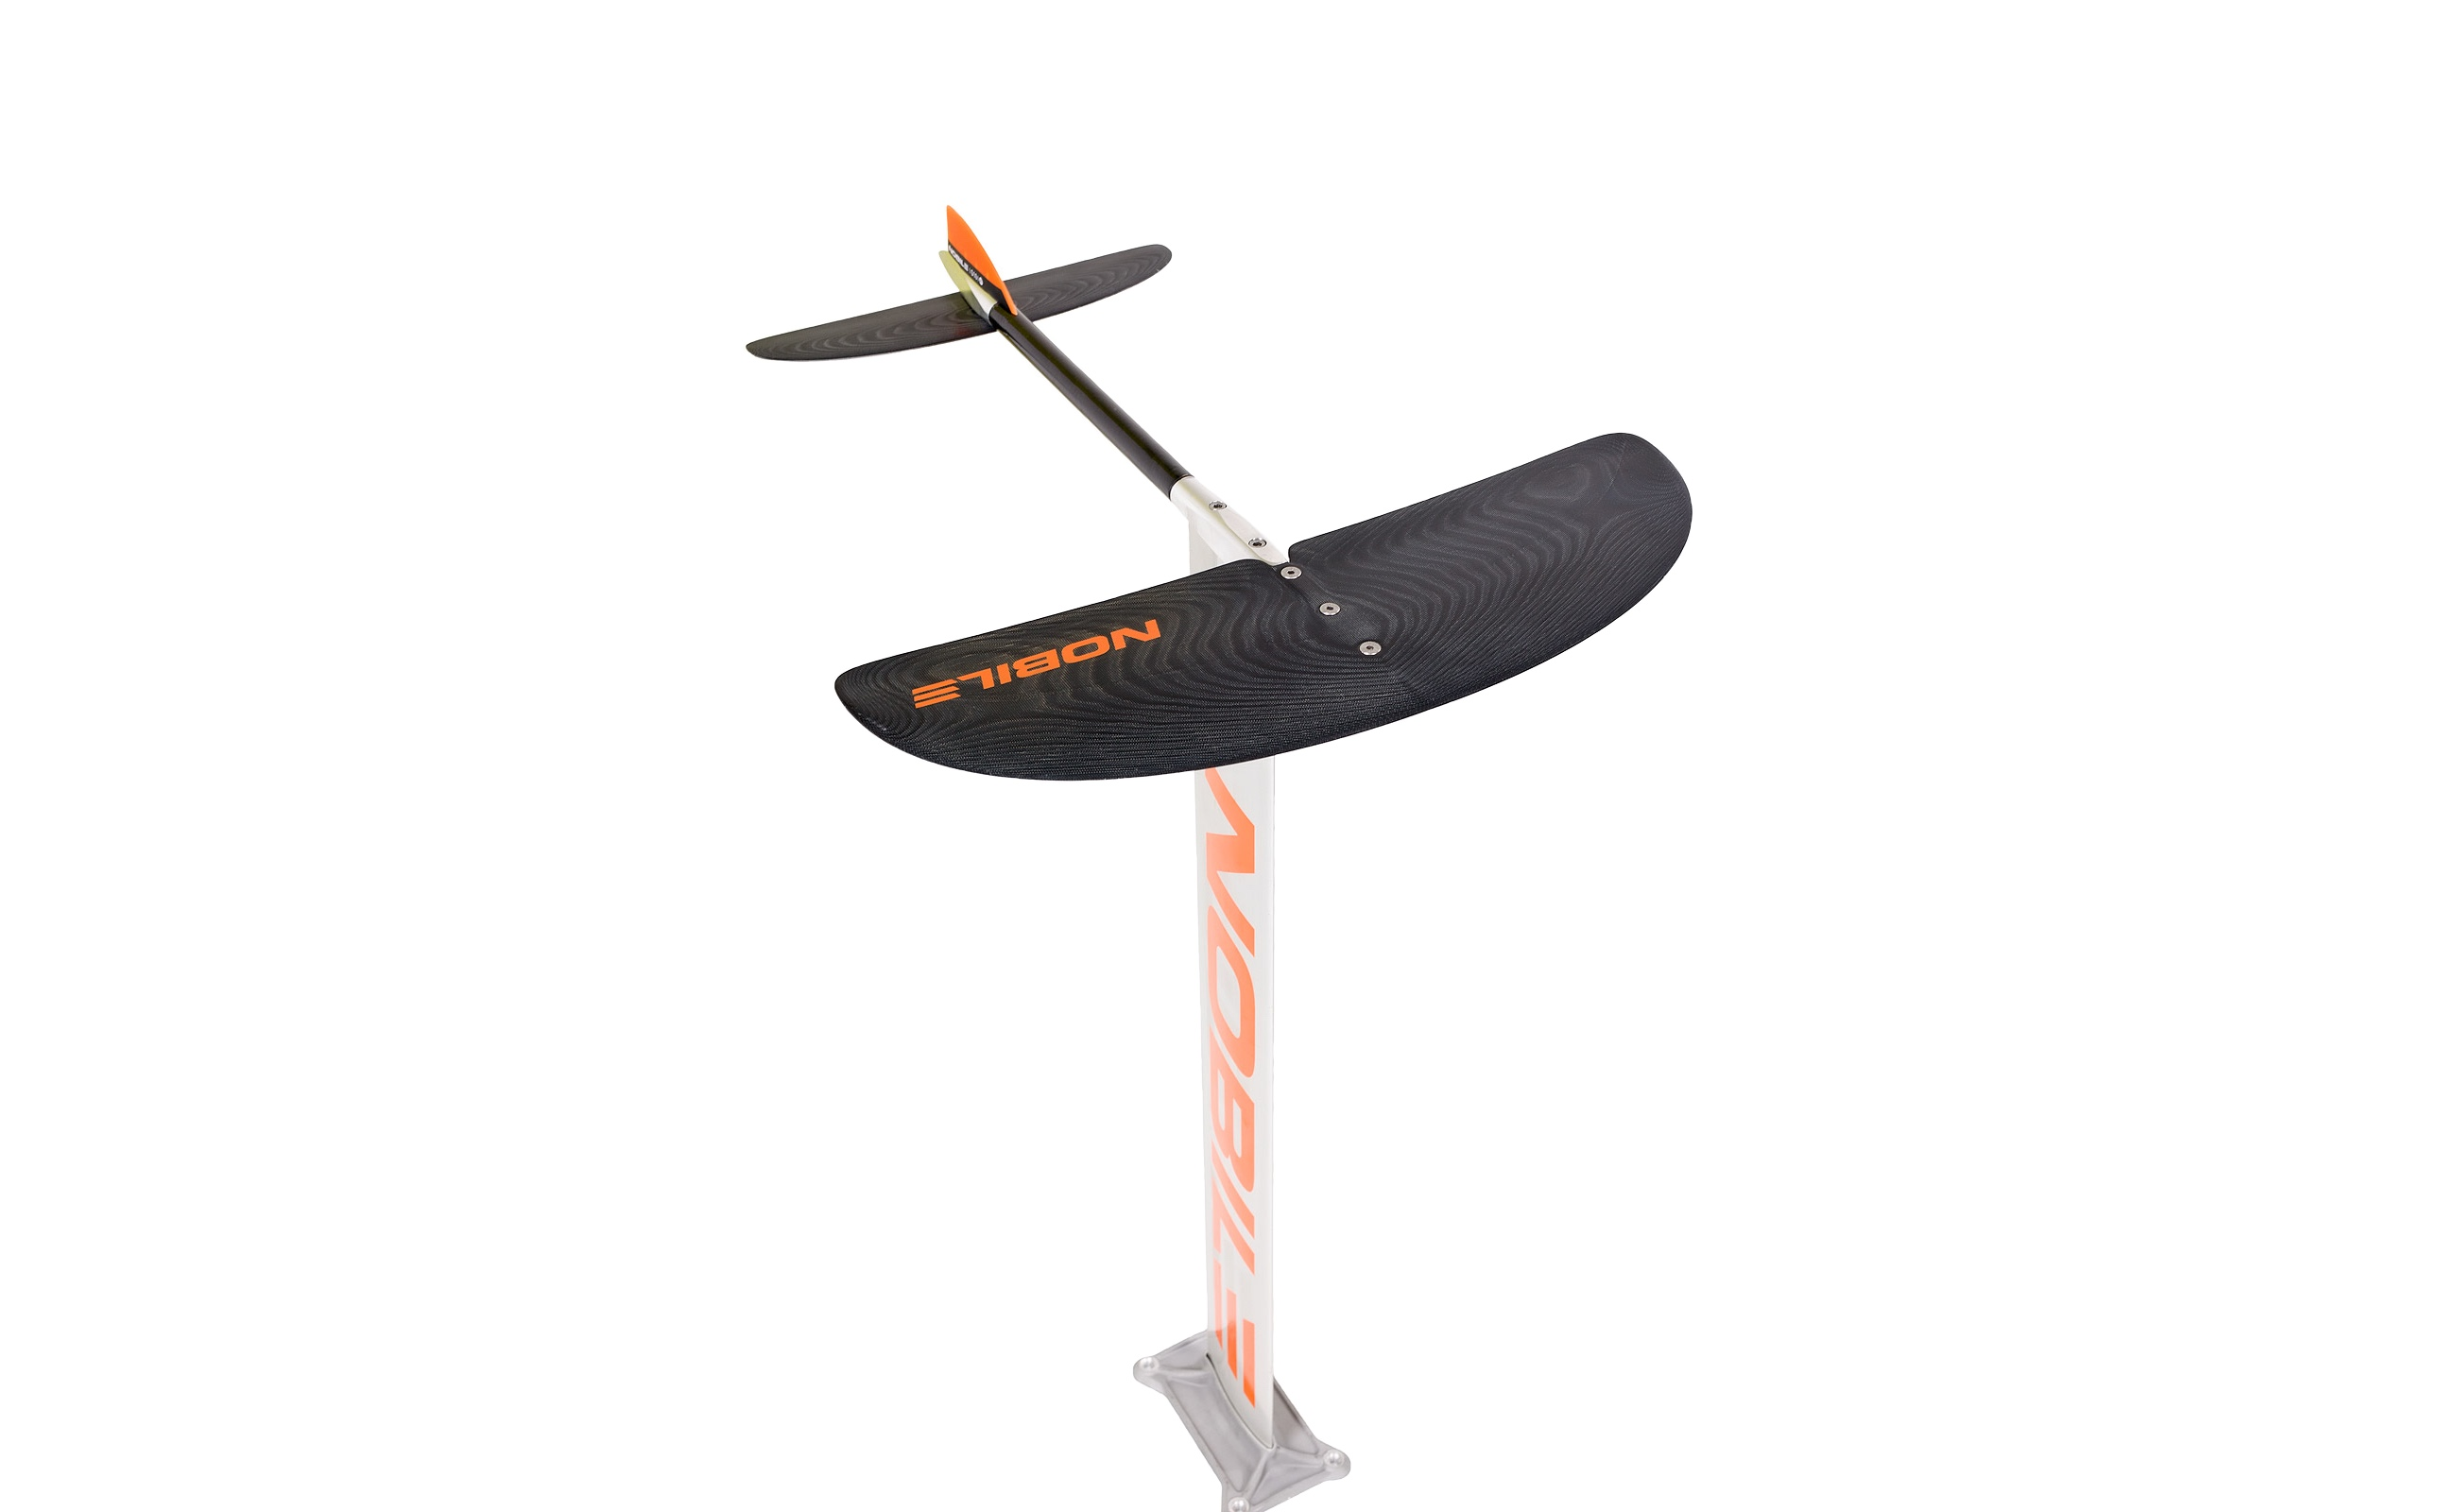 How to mount it ? Nobile ZEN Hydrofoil